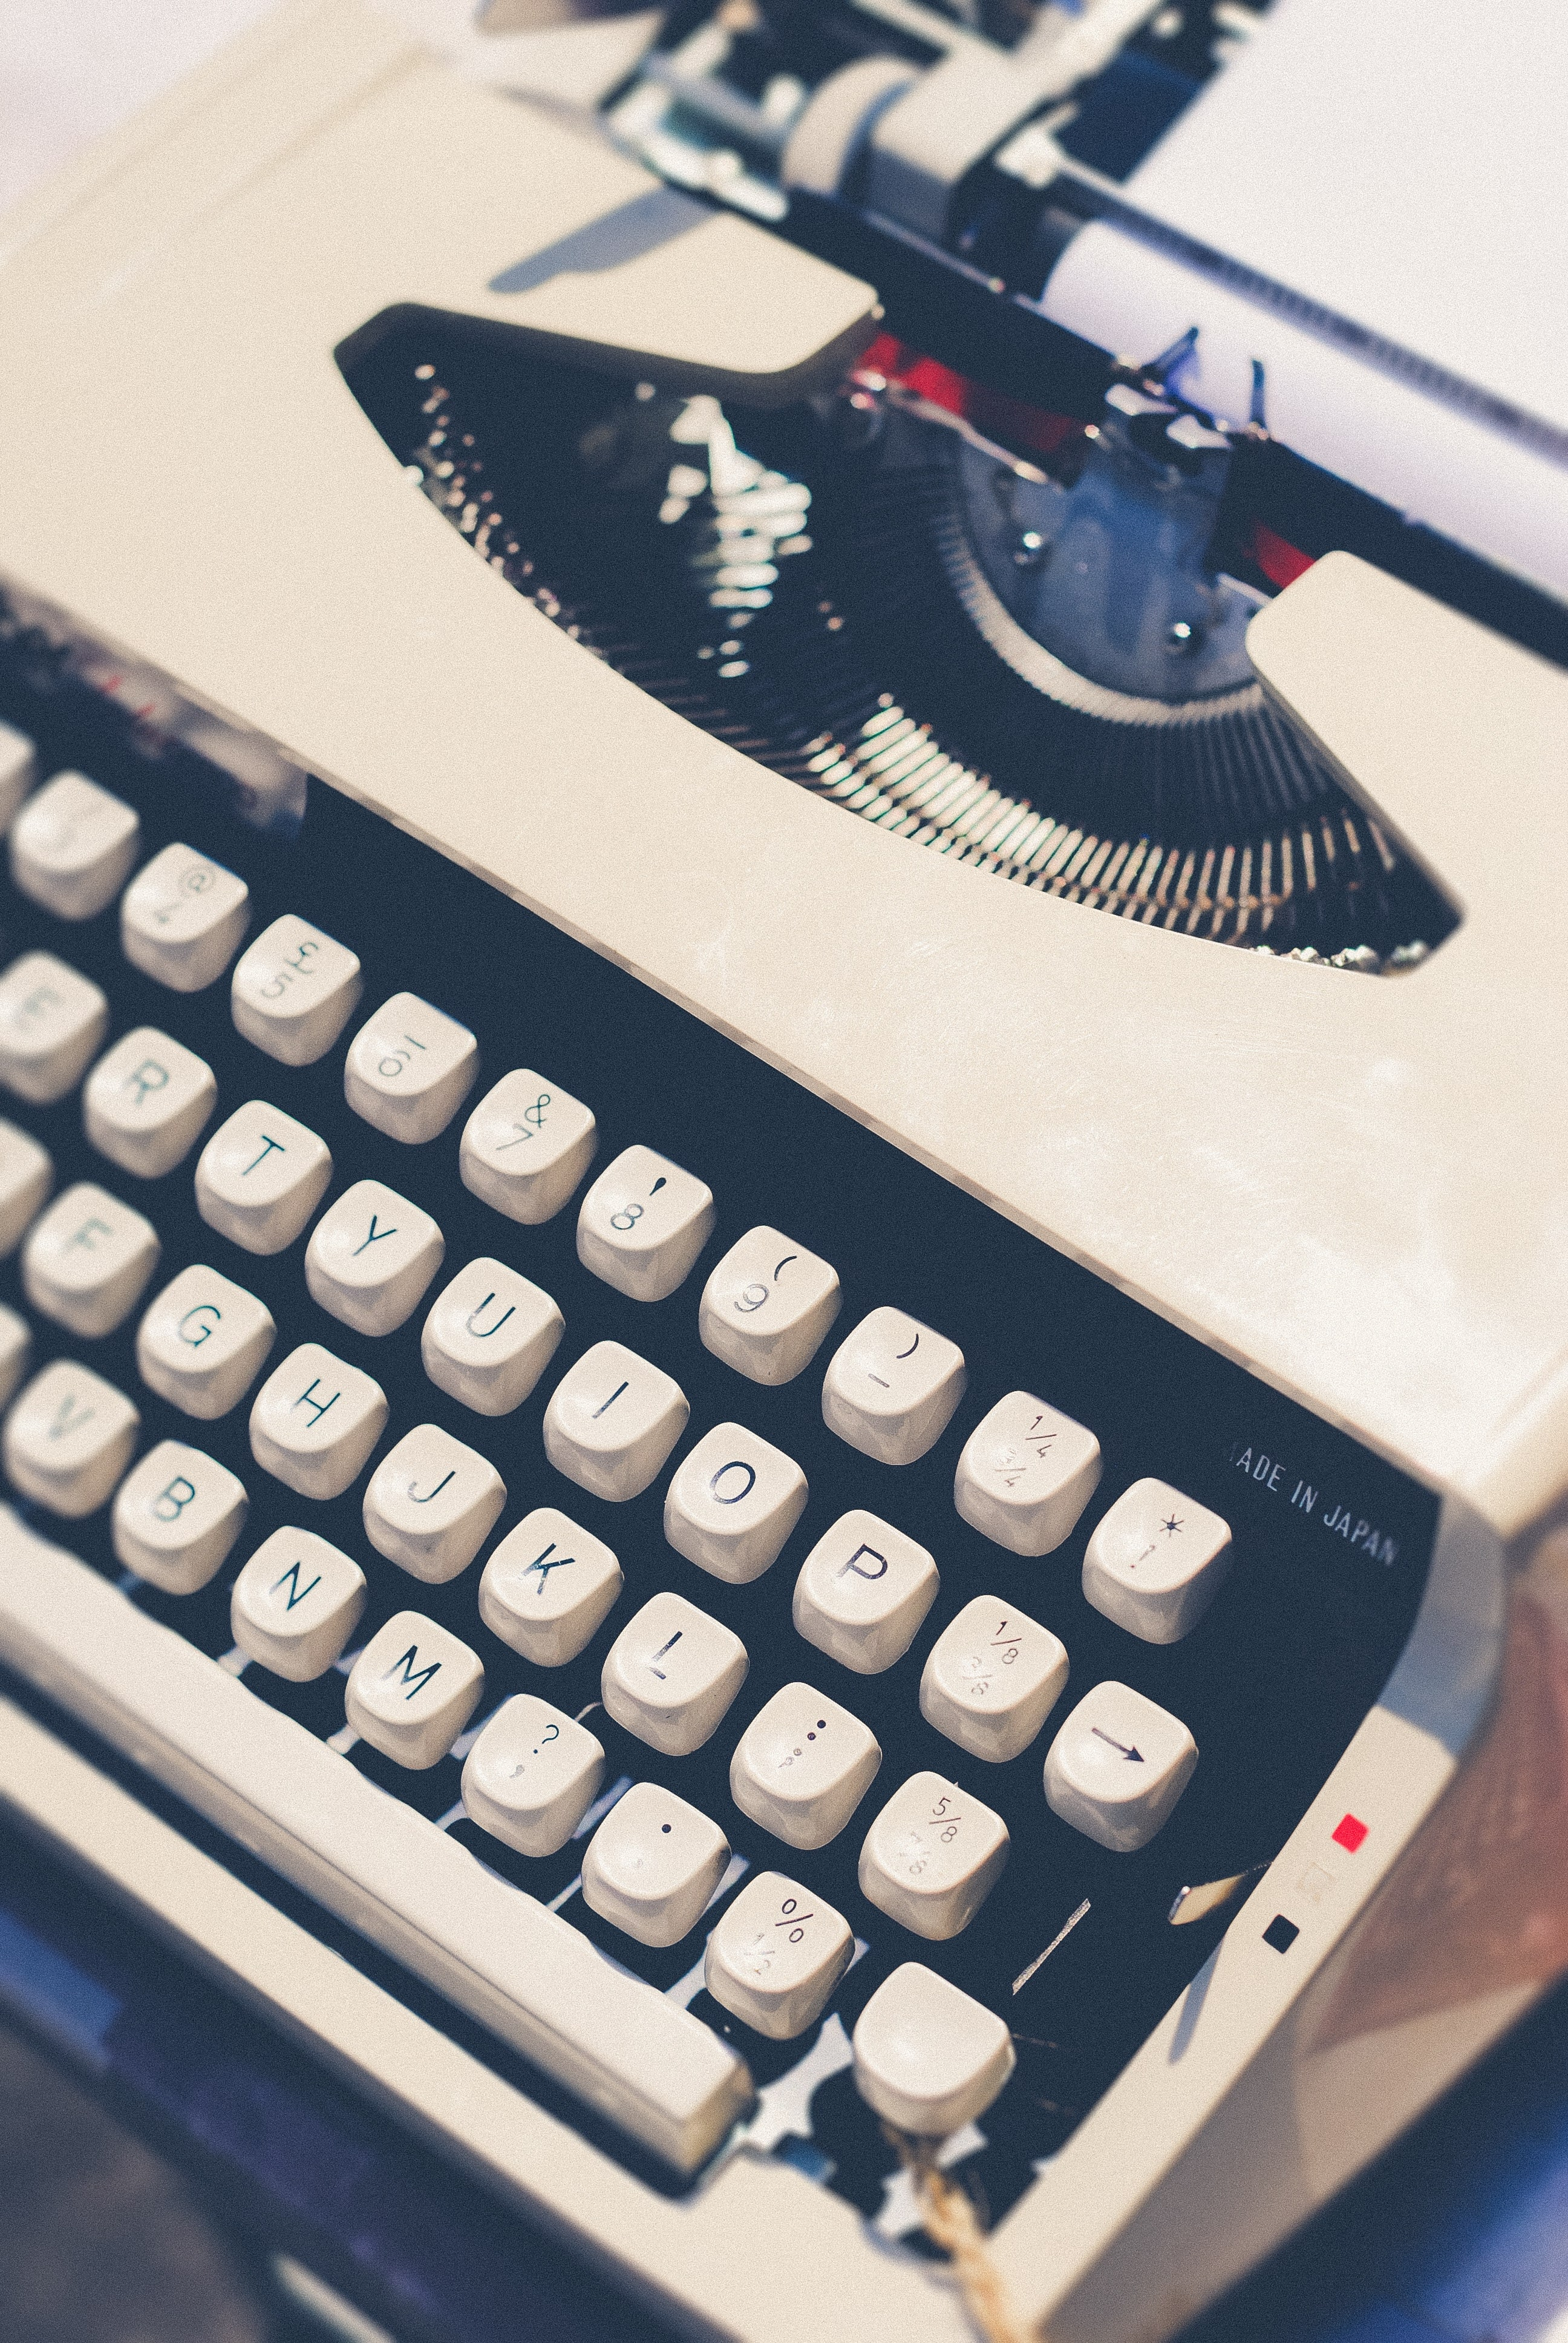 the 11 best typewriters (2019 reviews & guide) | word power